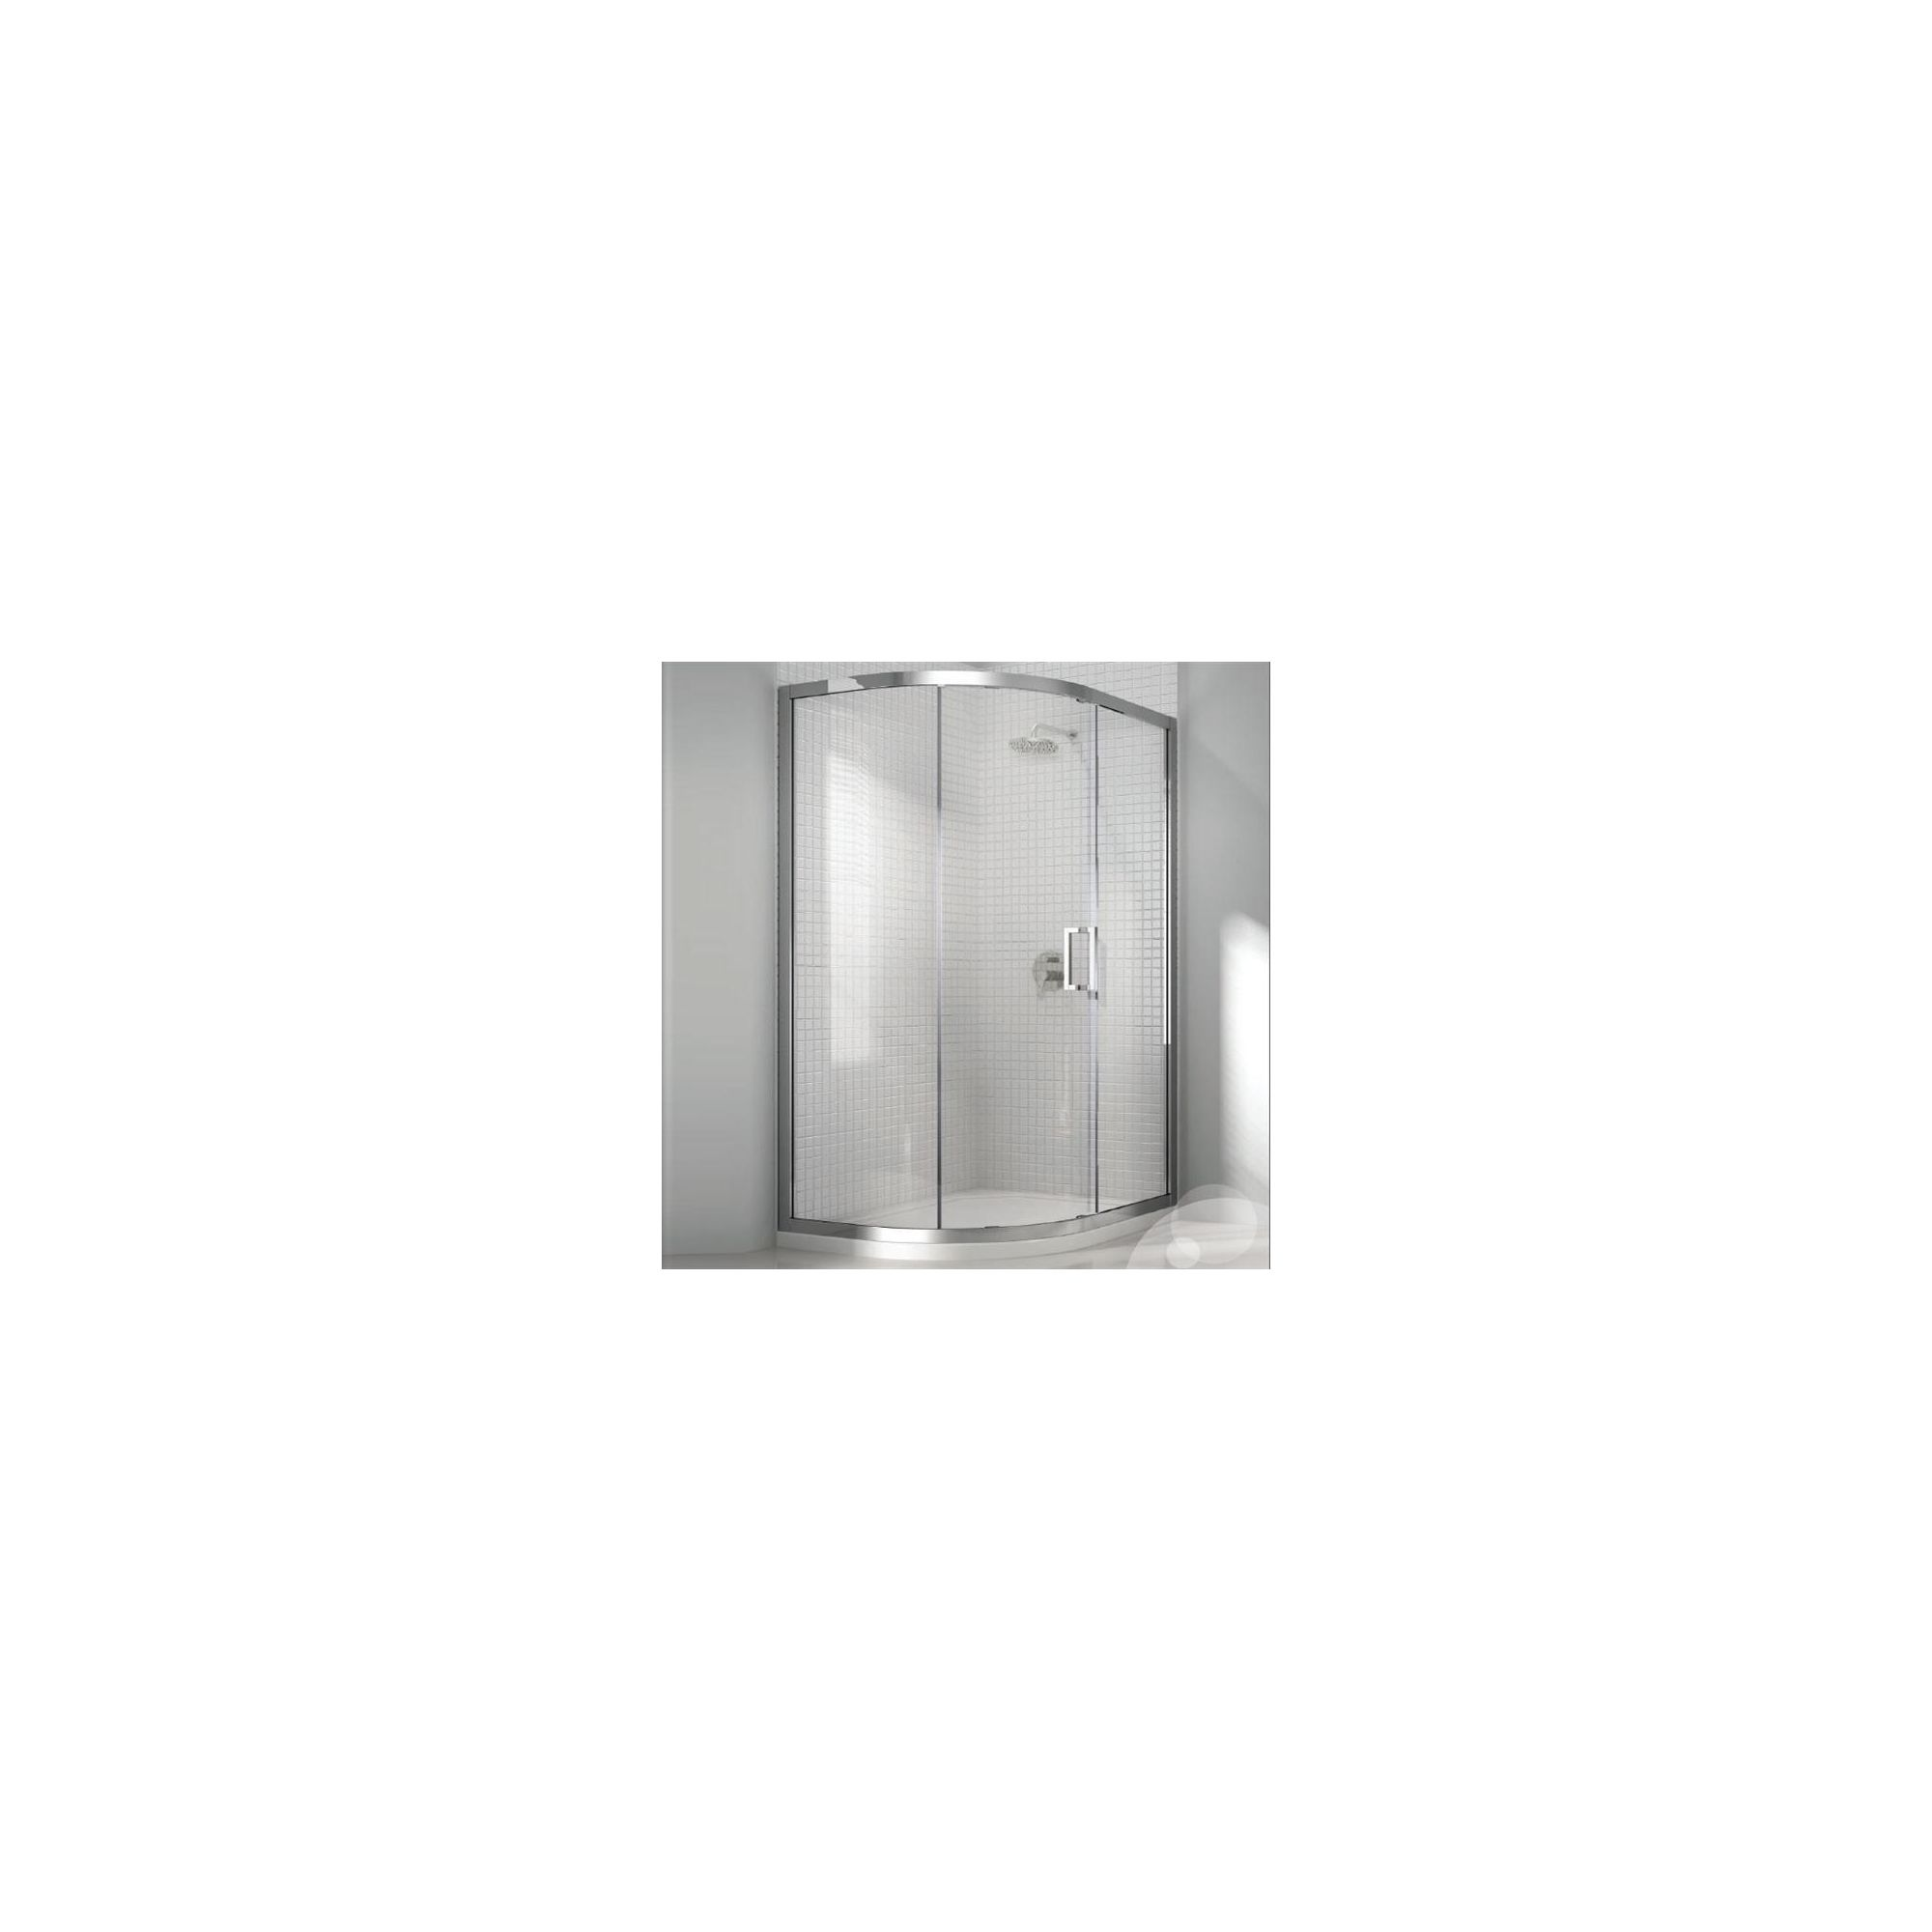 Merlyn Vivid Eight Offset Quadrant Shower Enclosure, 1000mm x 800mm, Left Handed, Low Profile Tray, 8mm Glass at Tesco Direct